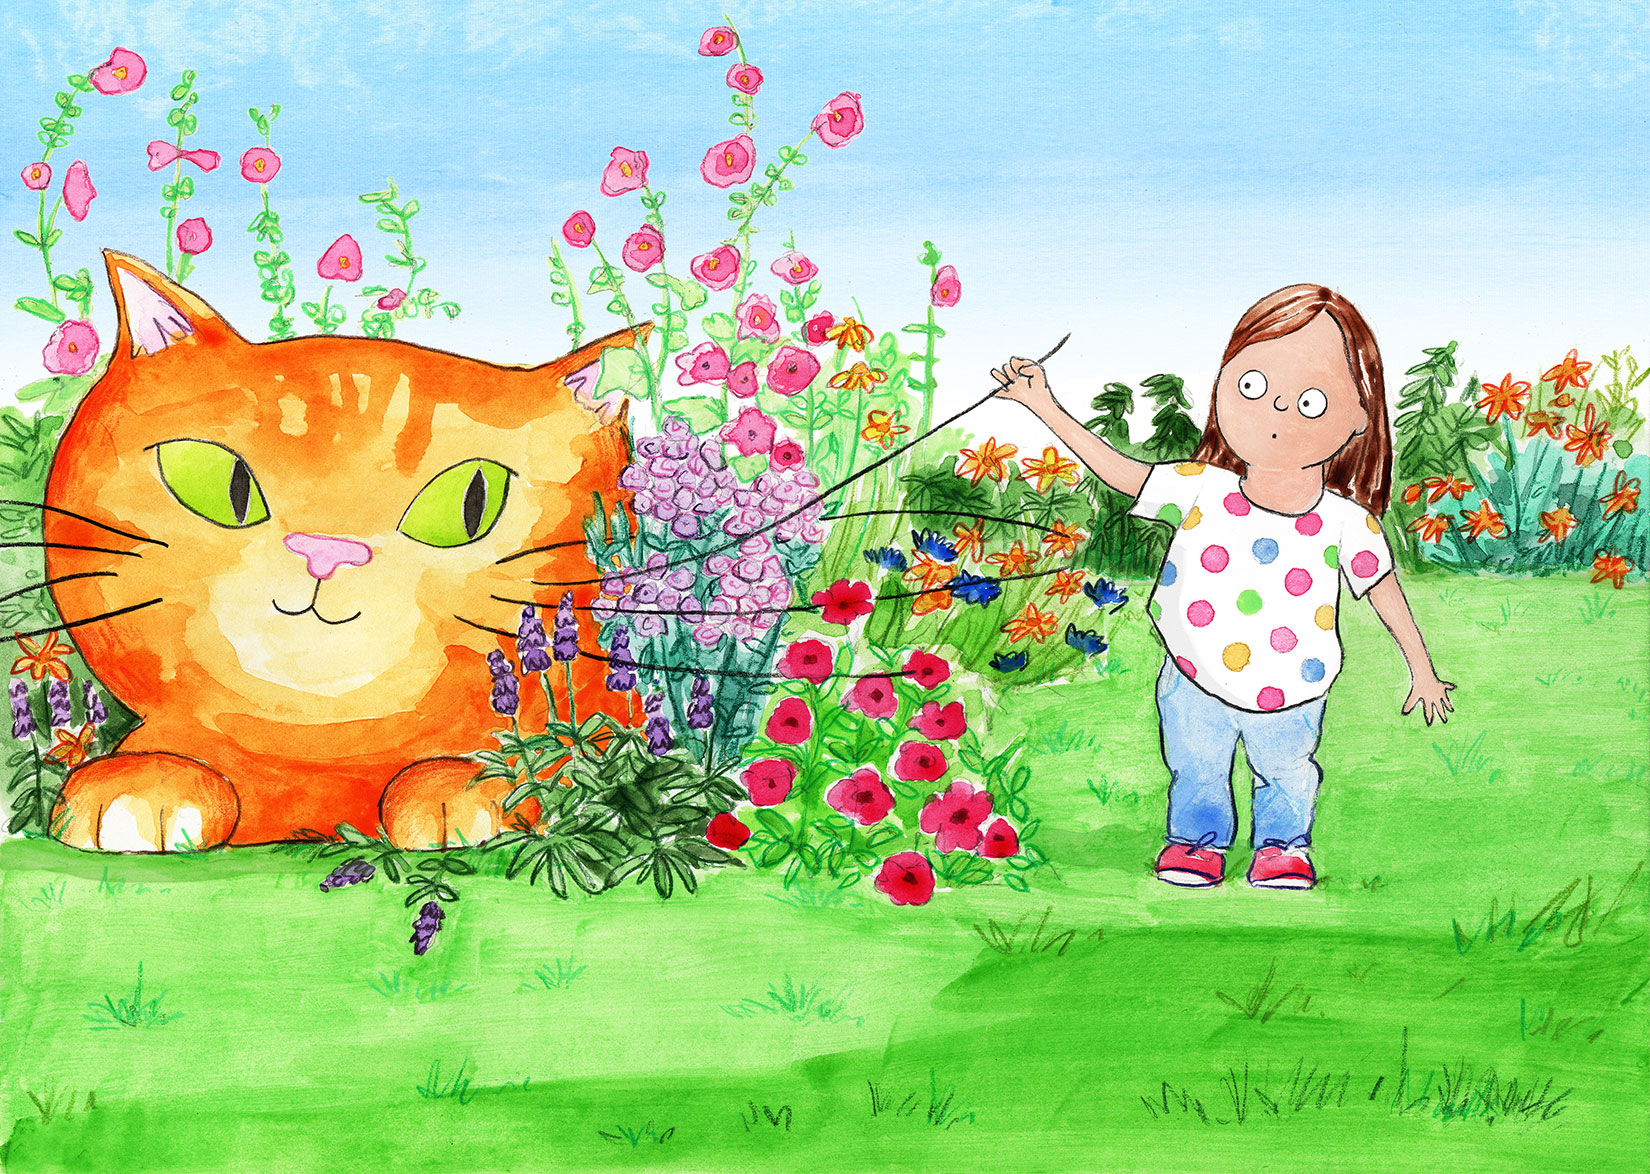 girl holding up whiskers of enourmous gigantic cat hiding behind the flowers in a garden